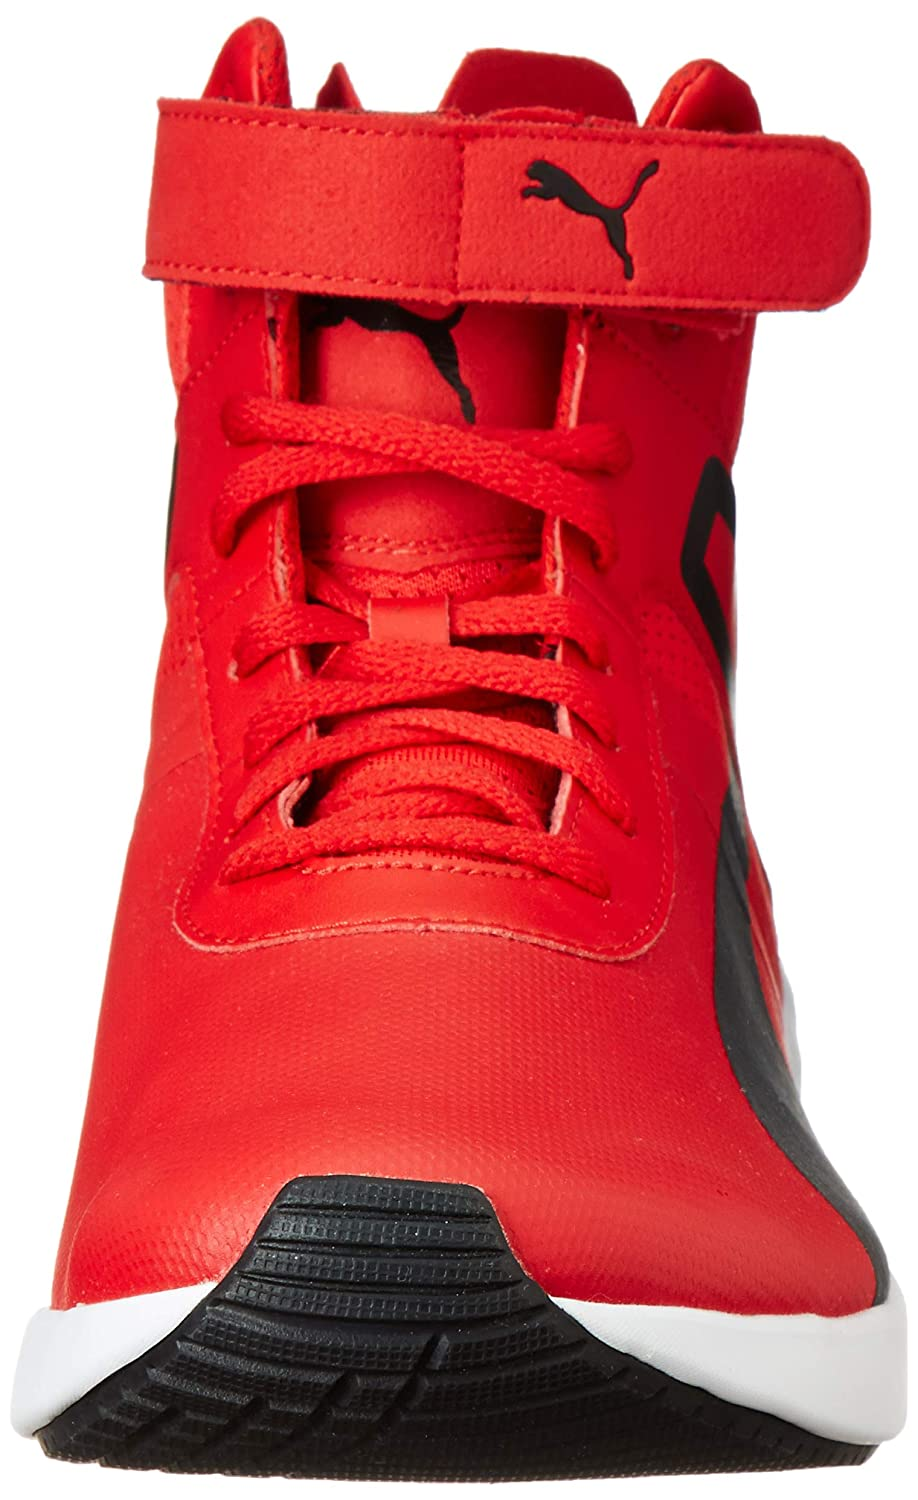 7449e846758 Puma Men s SF F116 Boot Rosso Corsa Black White Sneakers-8 UK India (42 EU)  (4057827804249)  Buy Online at Low Prices in India - Amazon.in